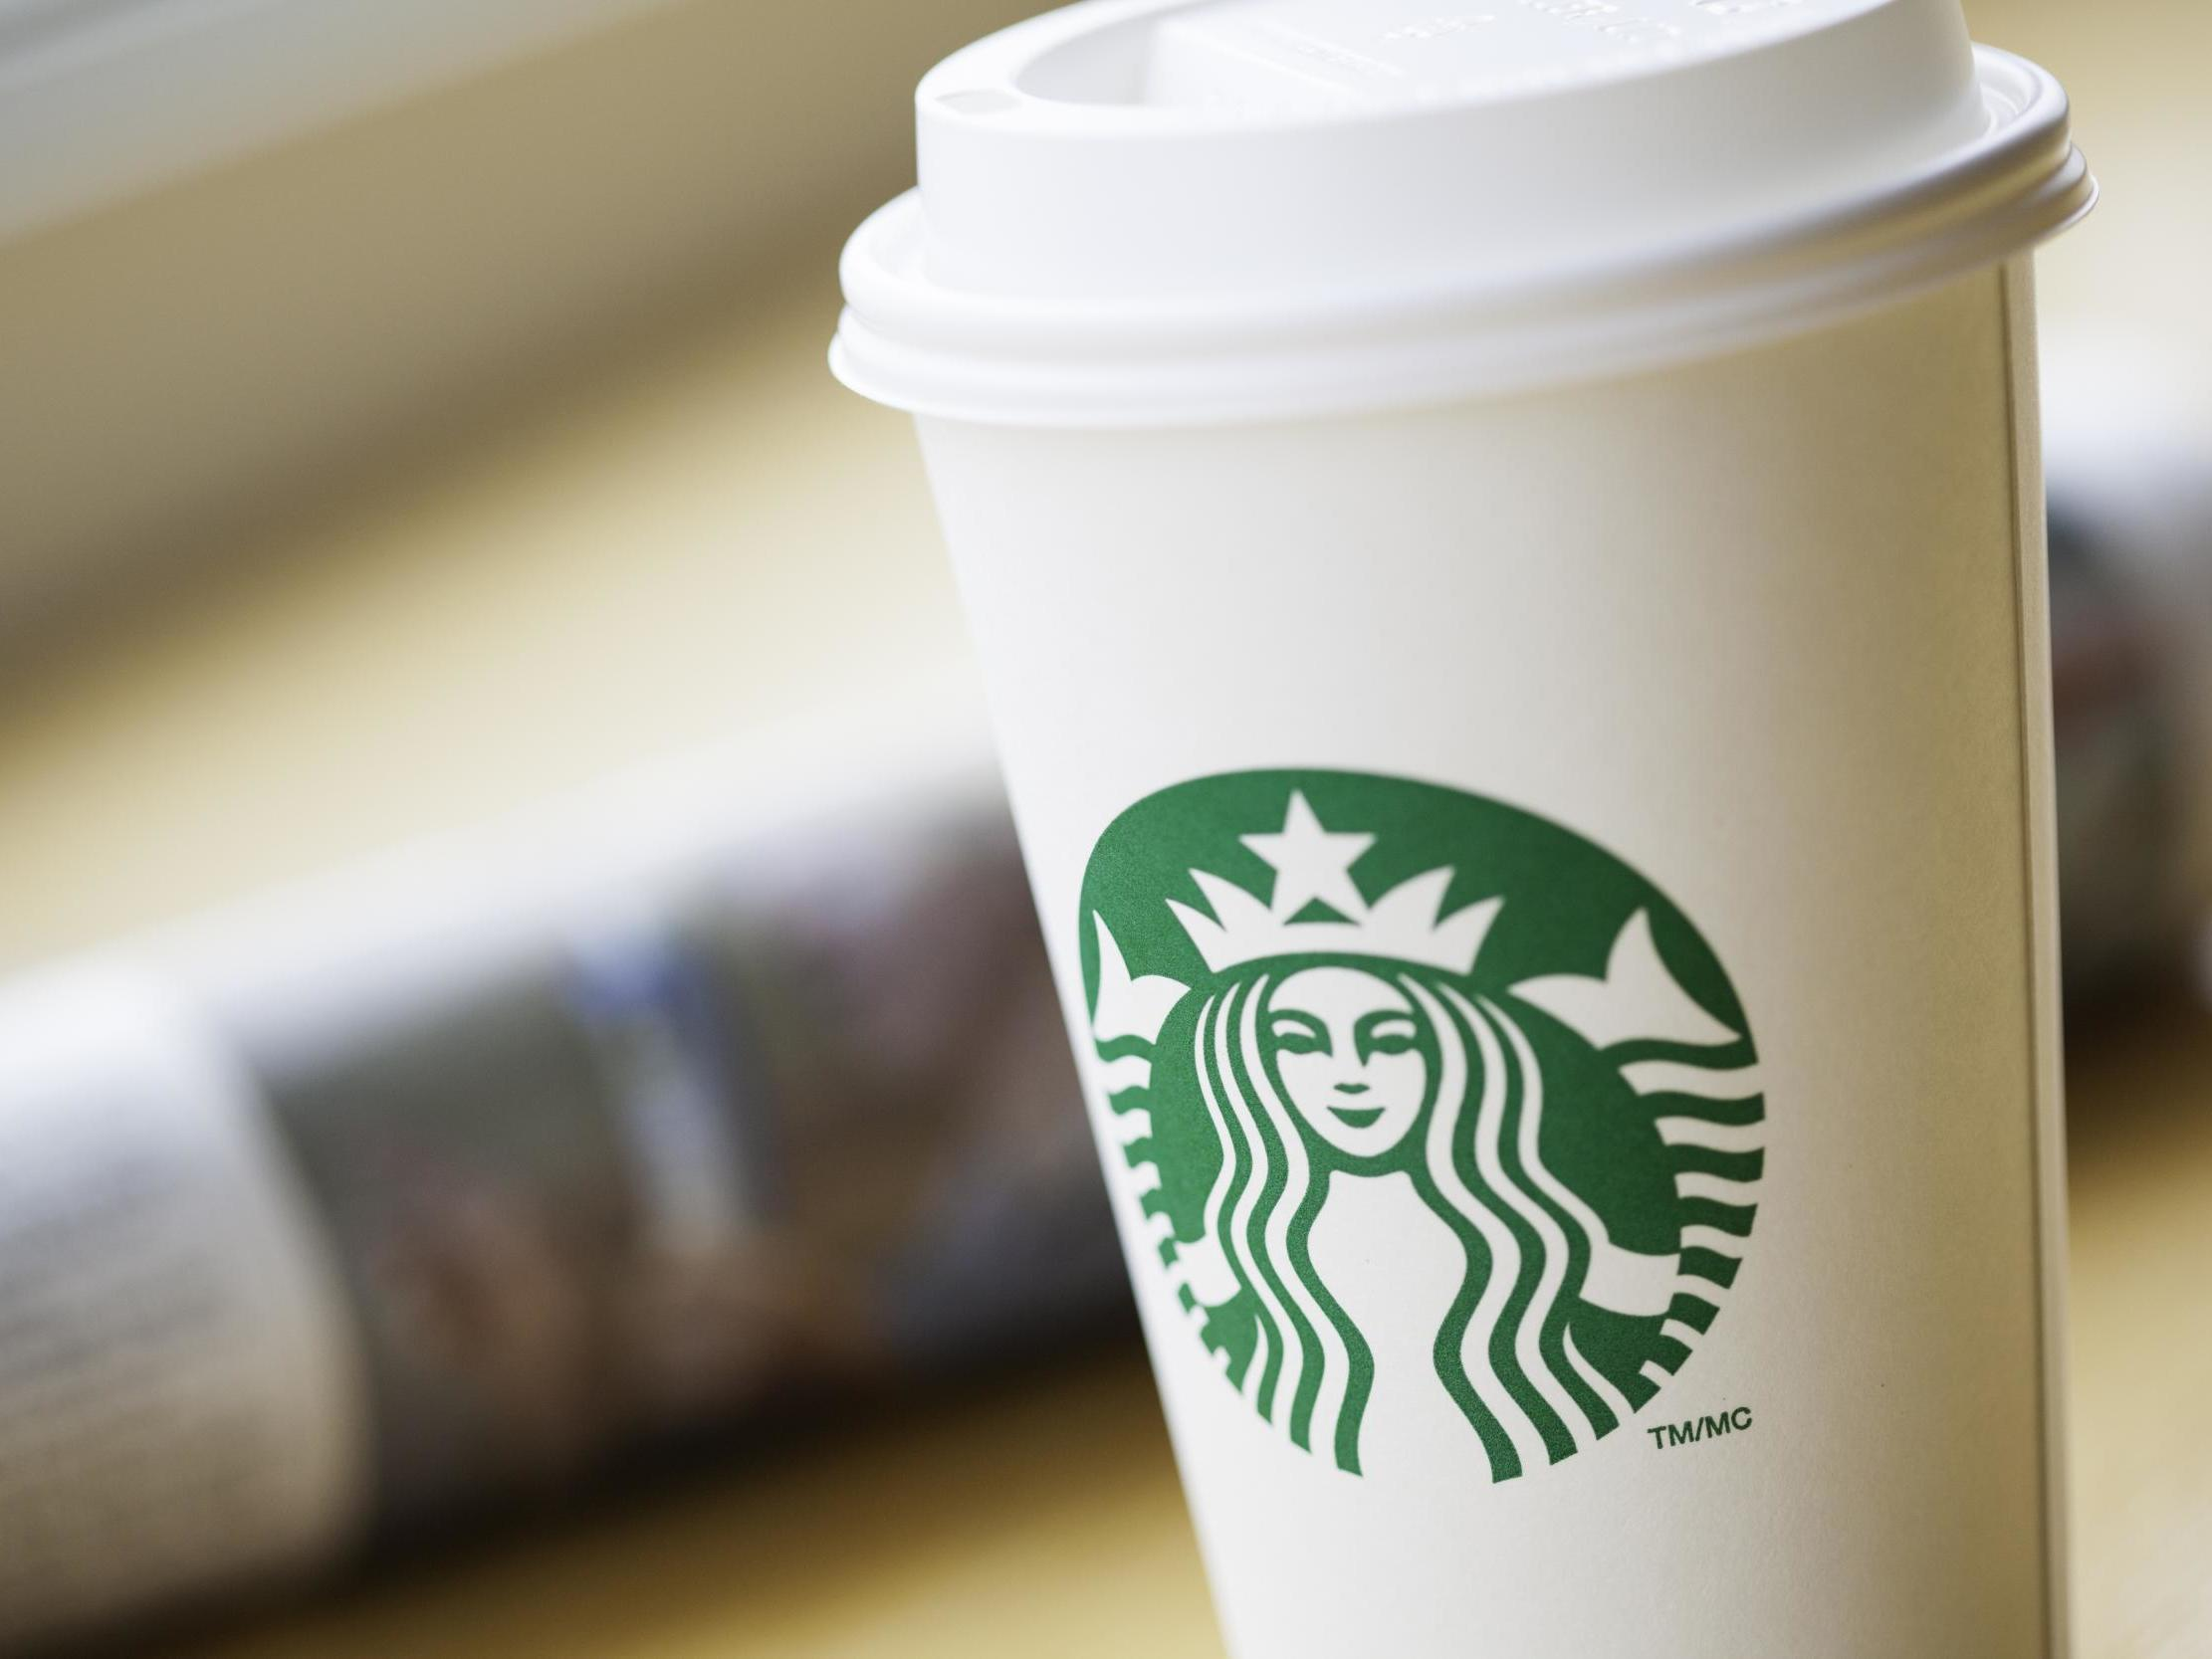 Coronavirus: Starbucks bans re usable cups in UK stores in